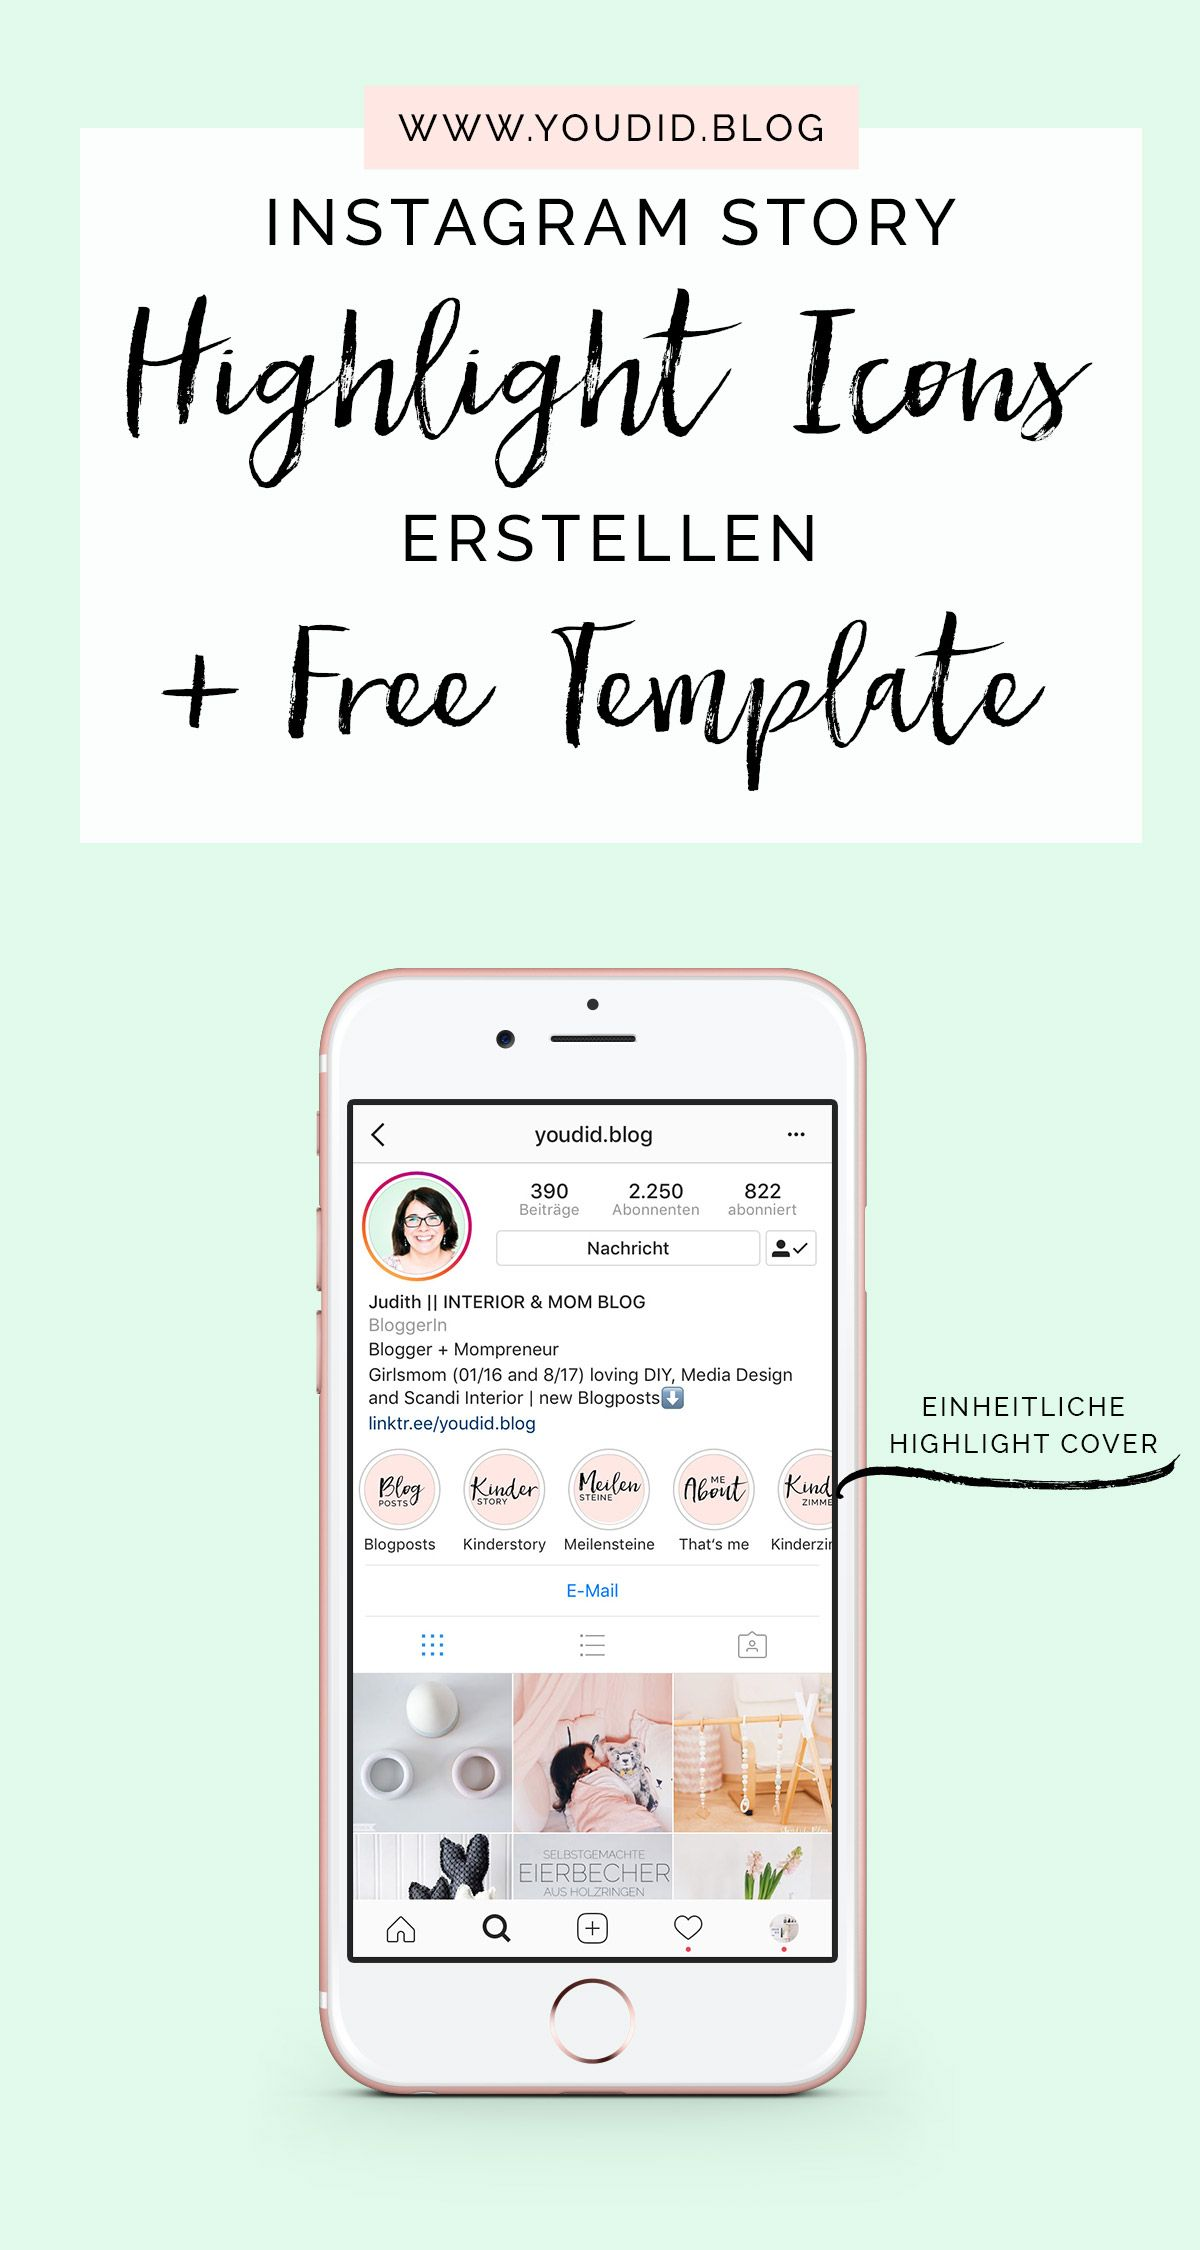 einheitliche instagram highlight cover erstellen free instagram story highlight icon template